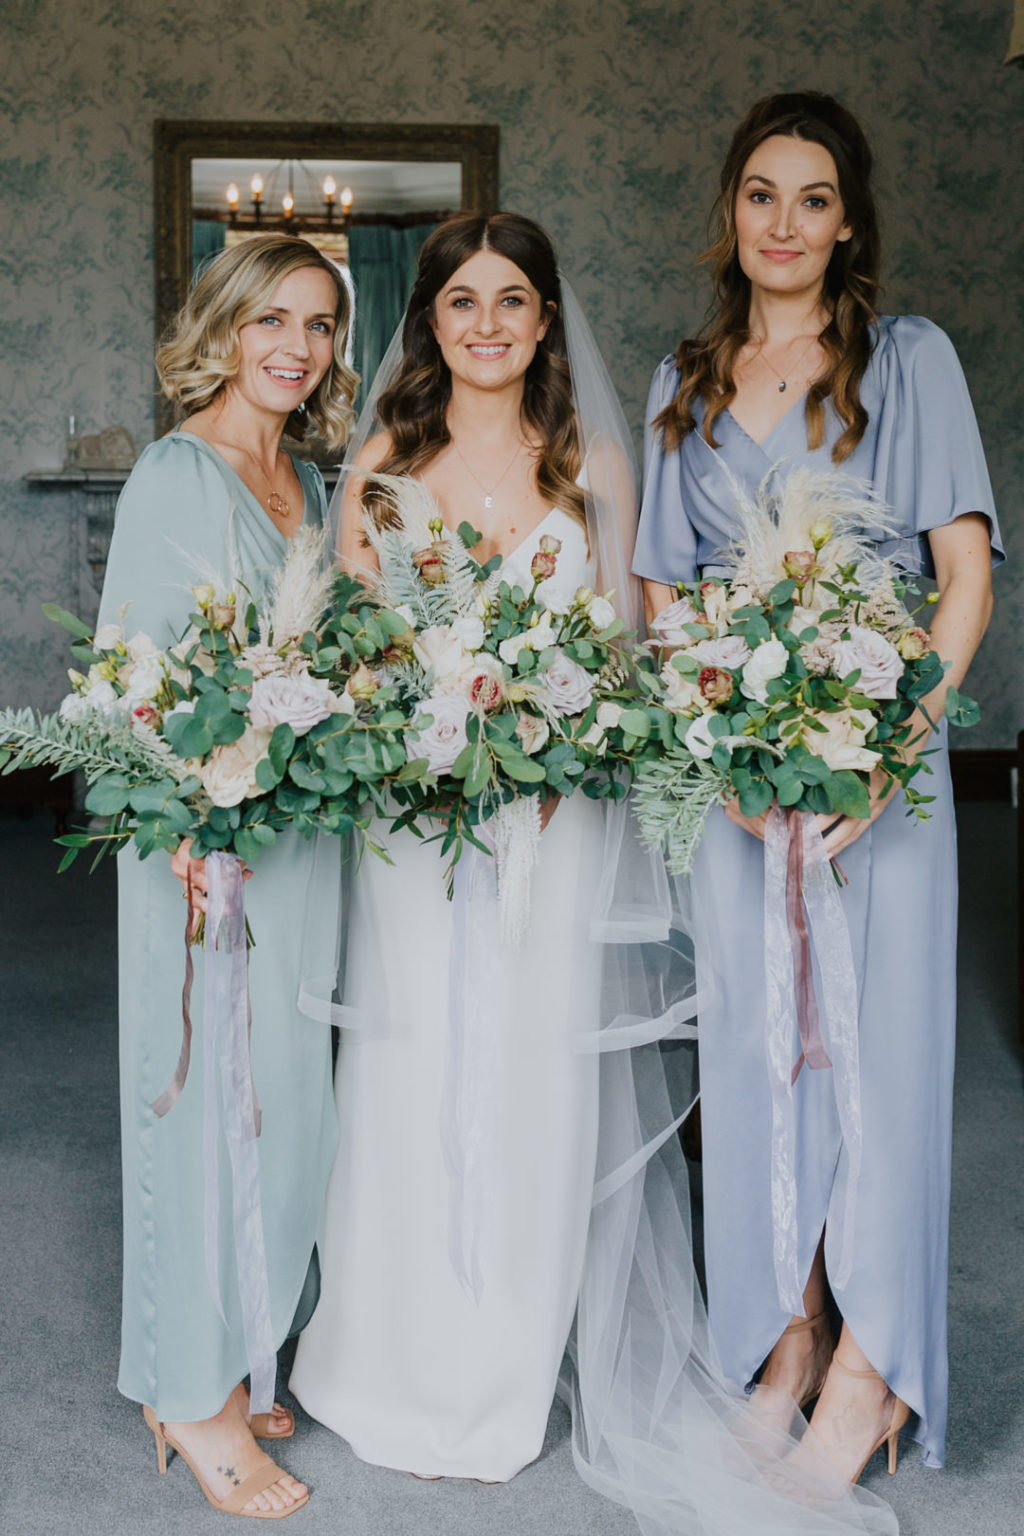 The bridesmaids were wearing pastel wrap maxi dresses and nude shoes